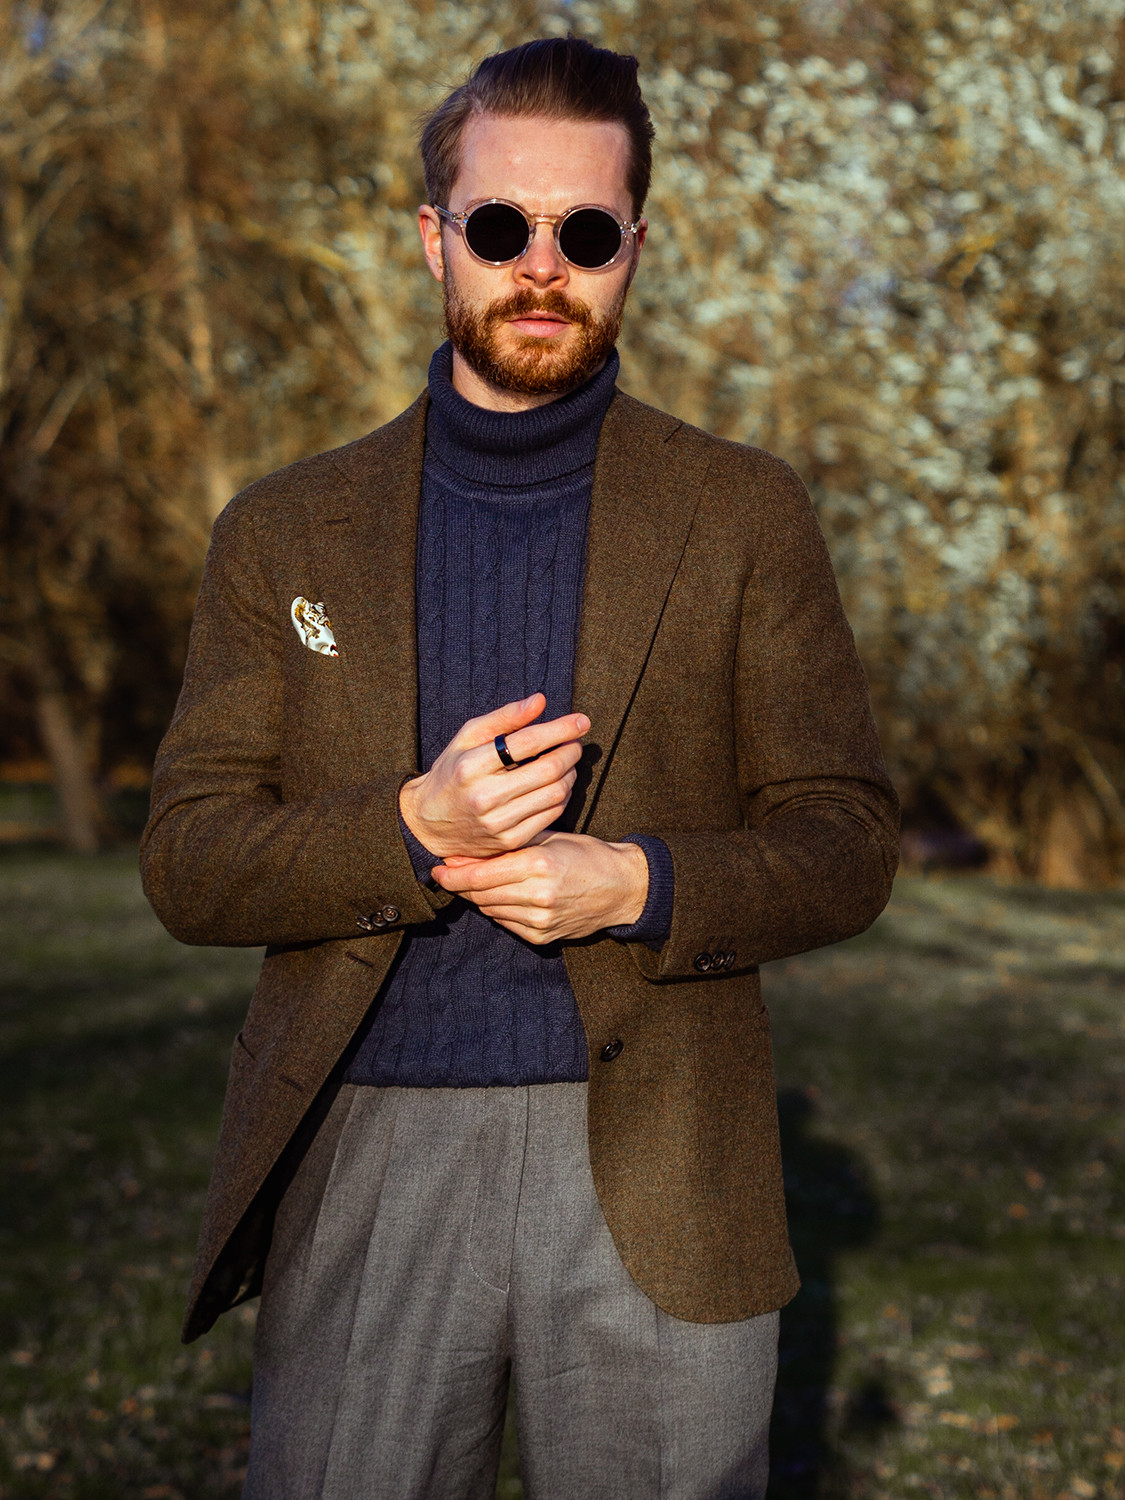 Men's outfit idea for 2021 with brown blazer, navy heavyweight rollneck sweater, grey plain dress pants, black monk-strap shoes. Suitable for fall and winter.